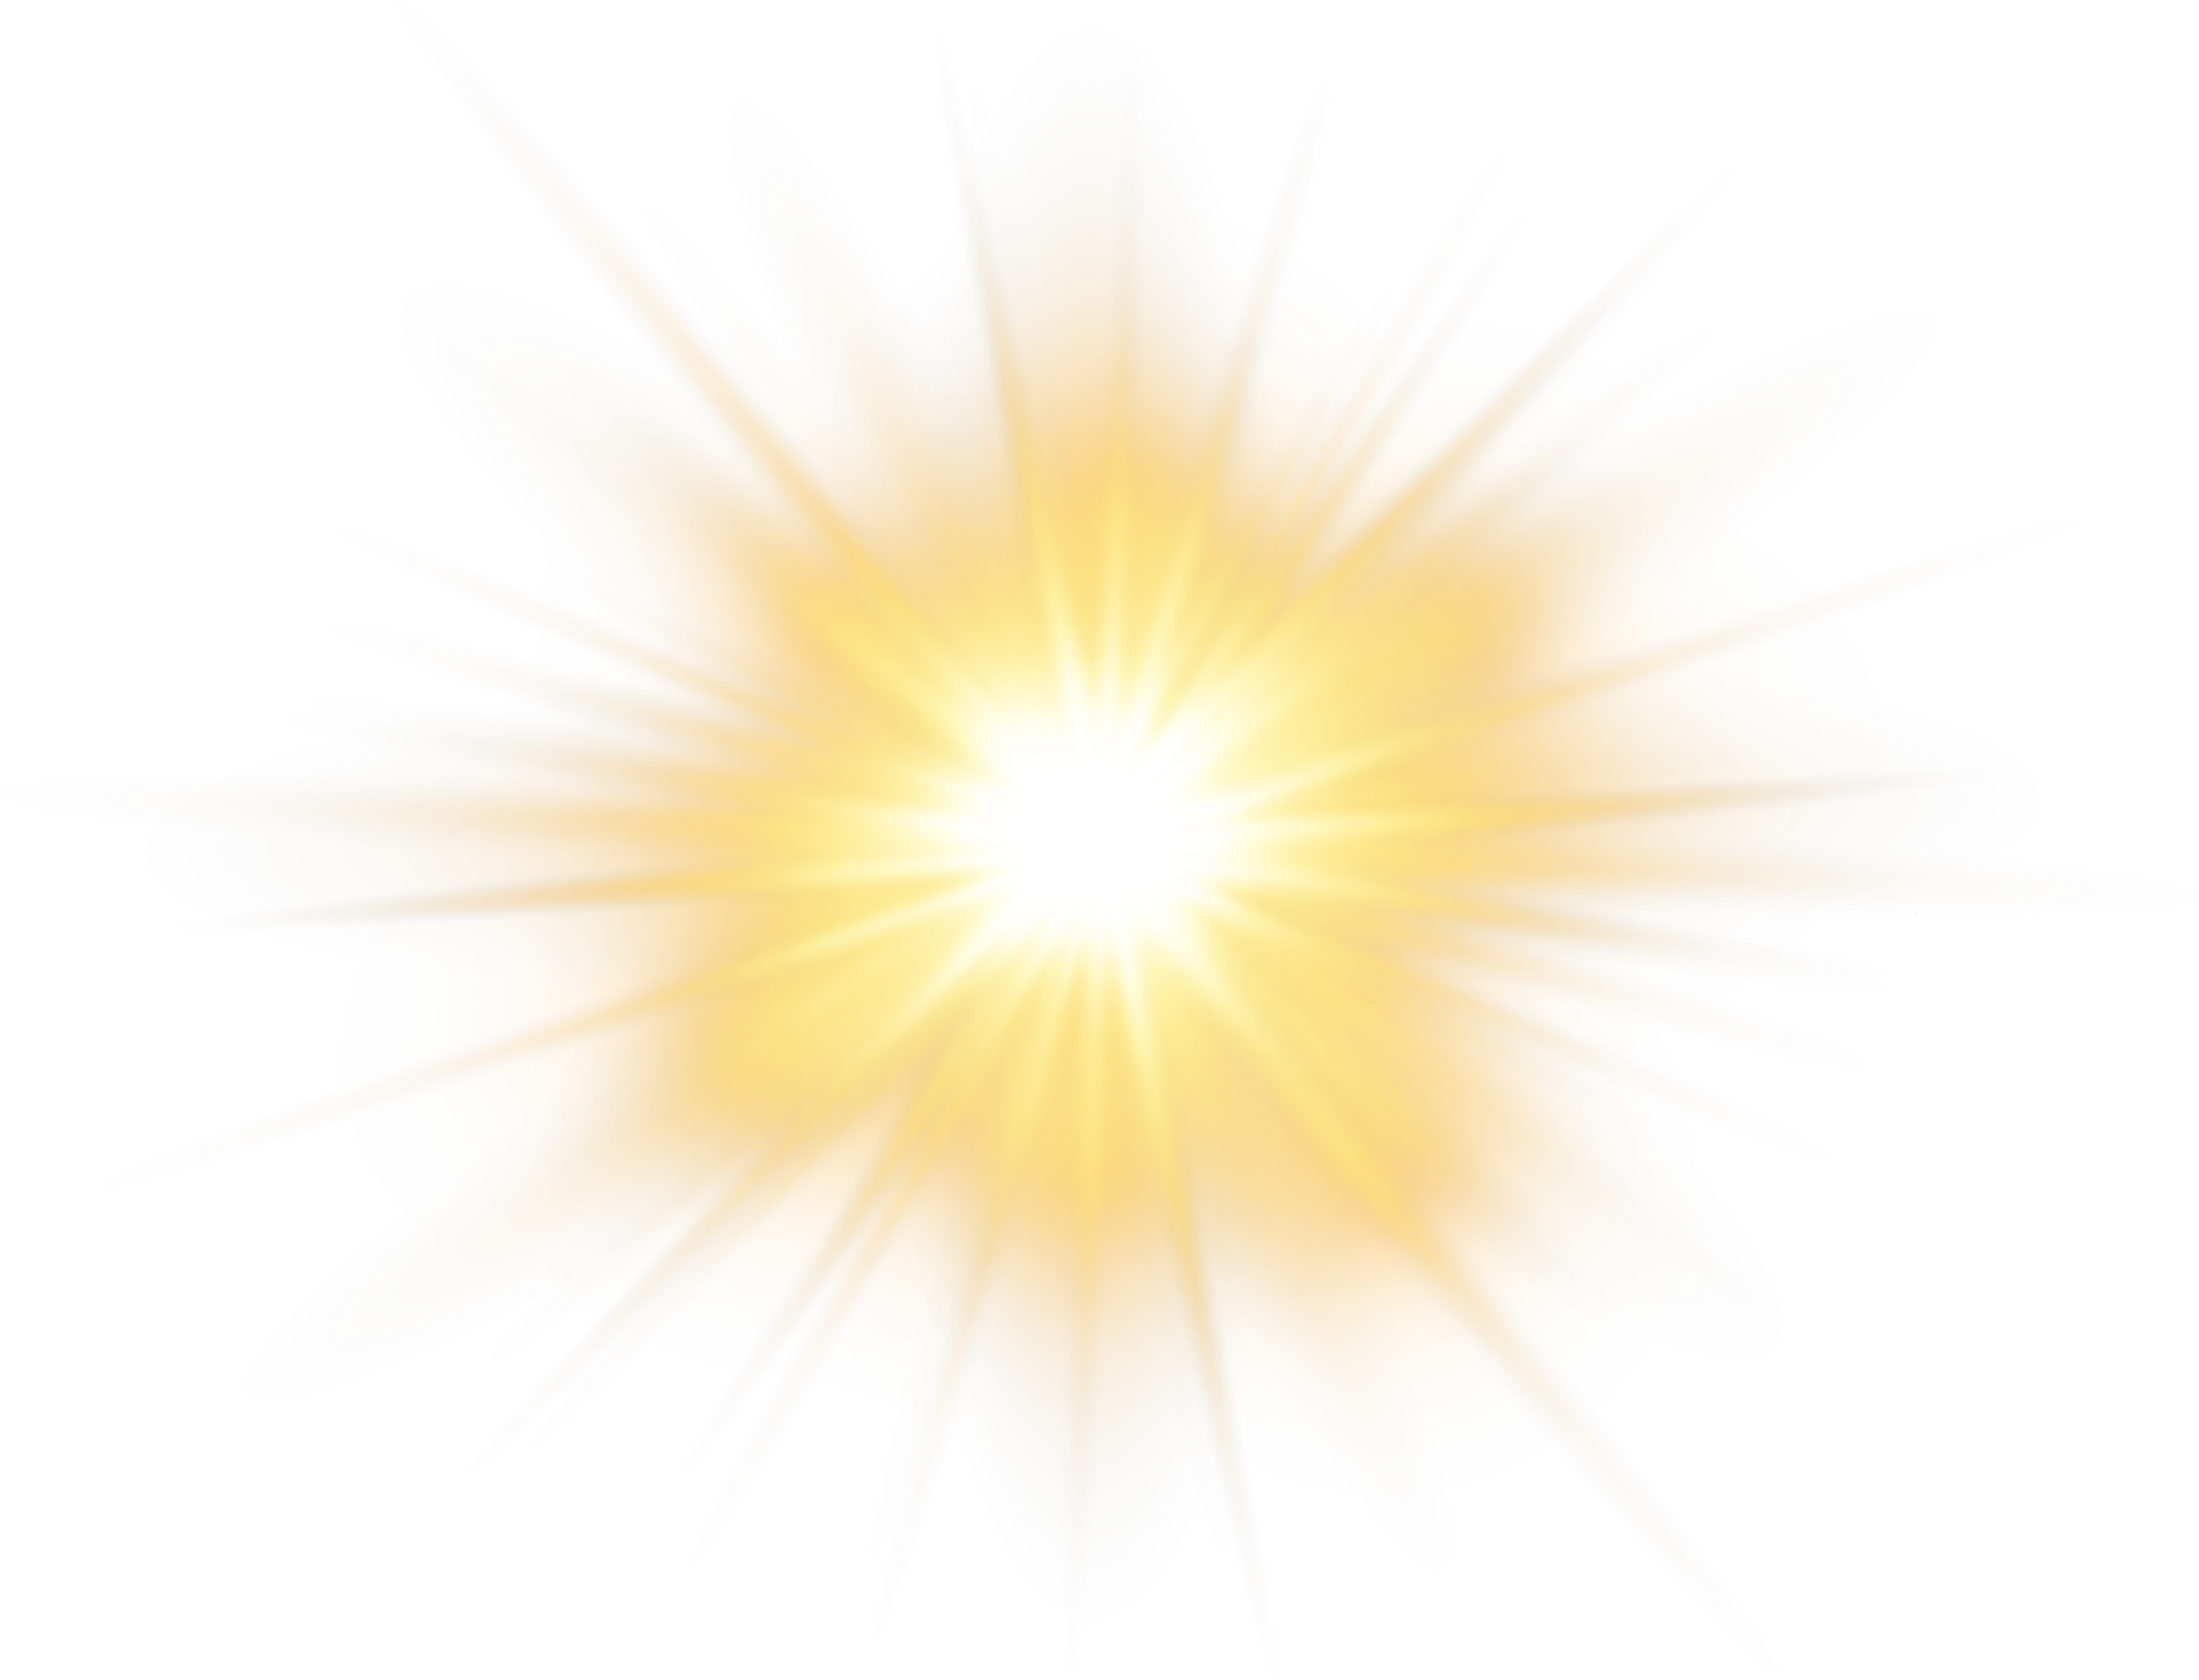 Sunshine clipart effects clip art free library Pin by Vaisakh on Png | Heart clip art, Art images, Clipart ... clip art free library